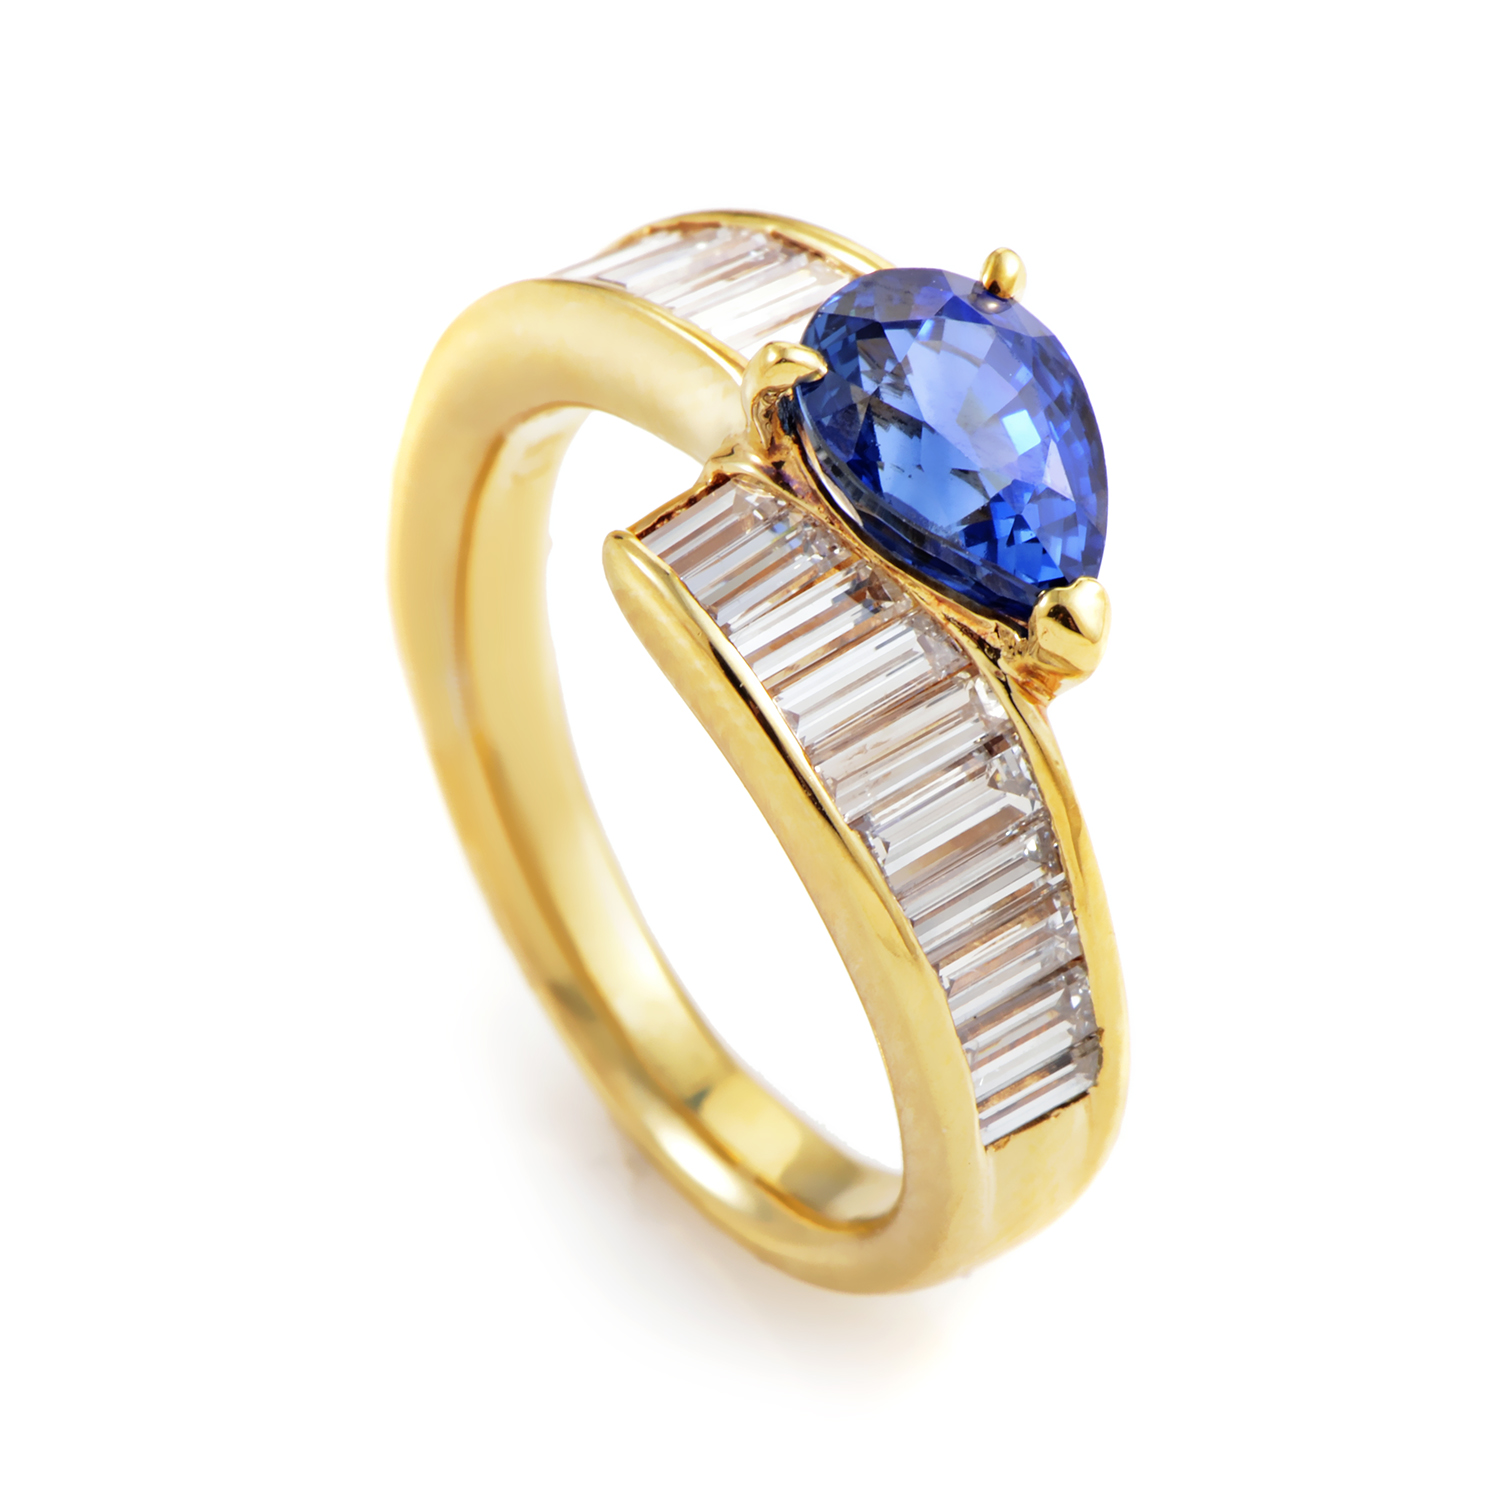 18K Yellow Gold Sapphire & Diamond Ring MFC06-020916